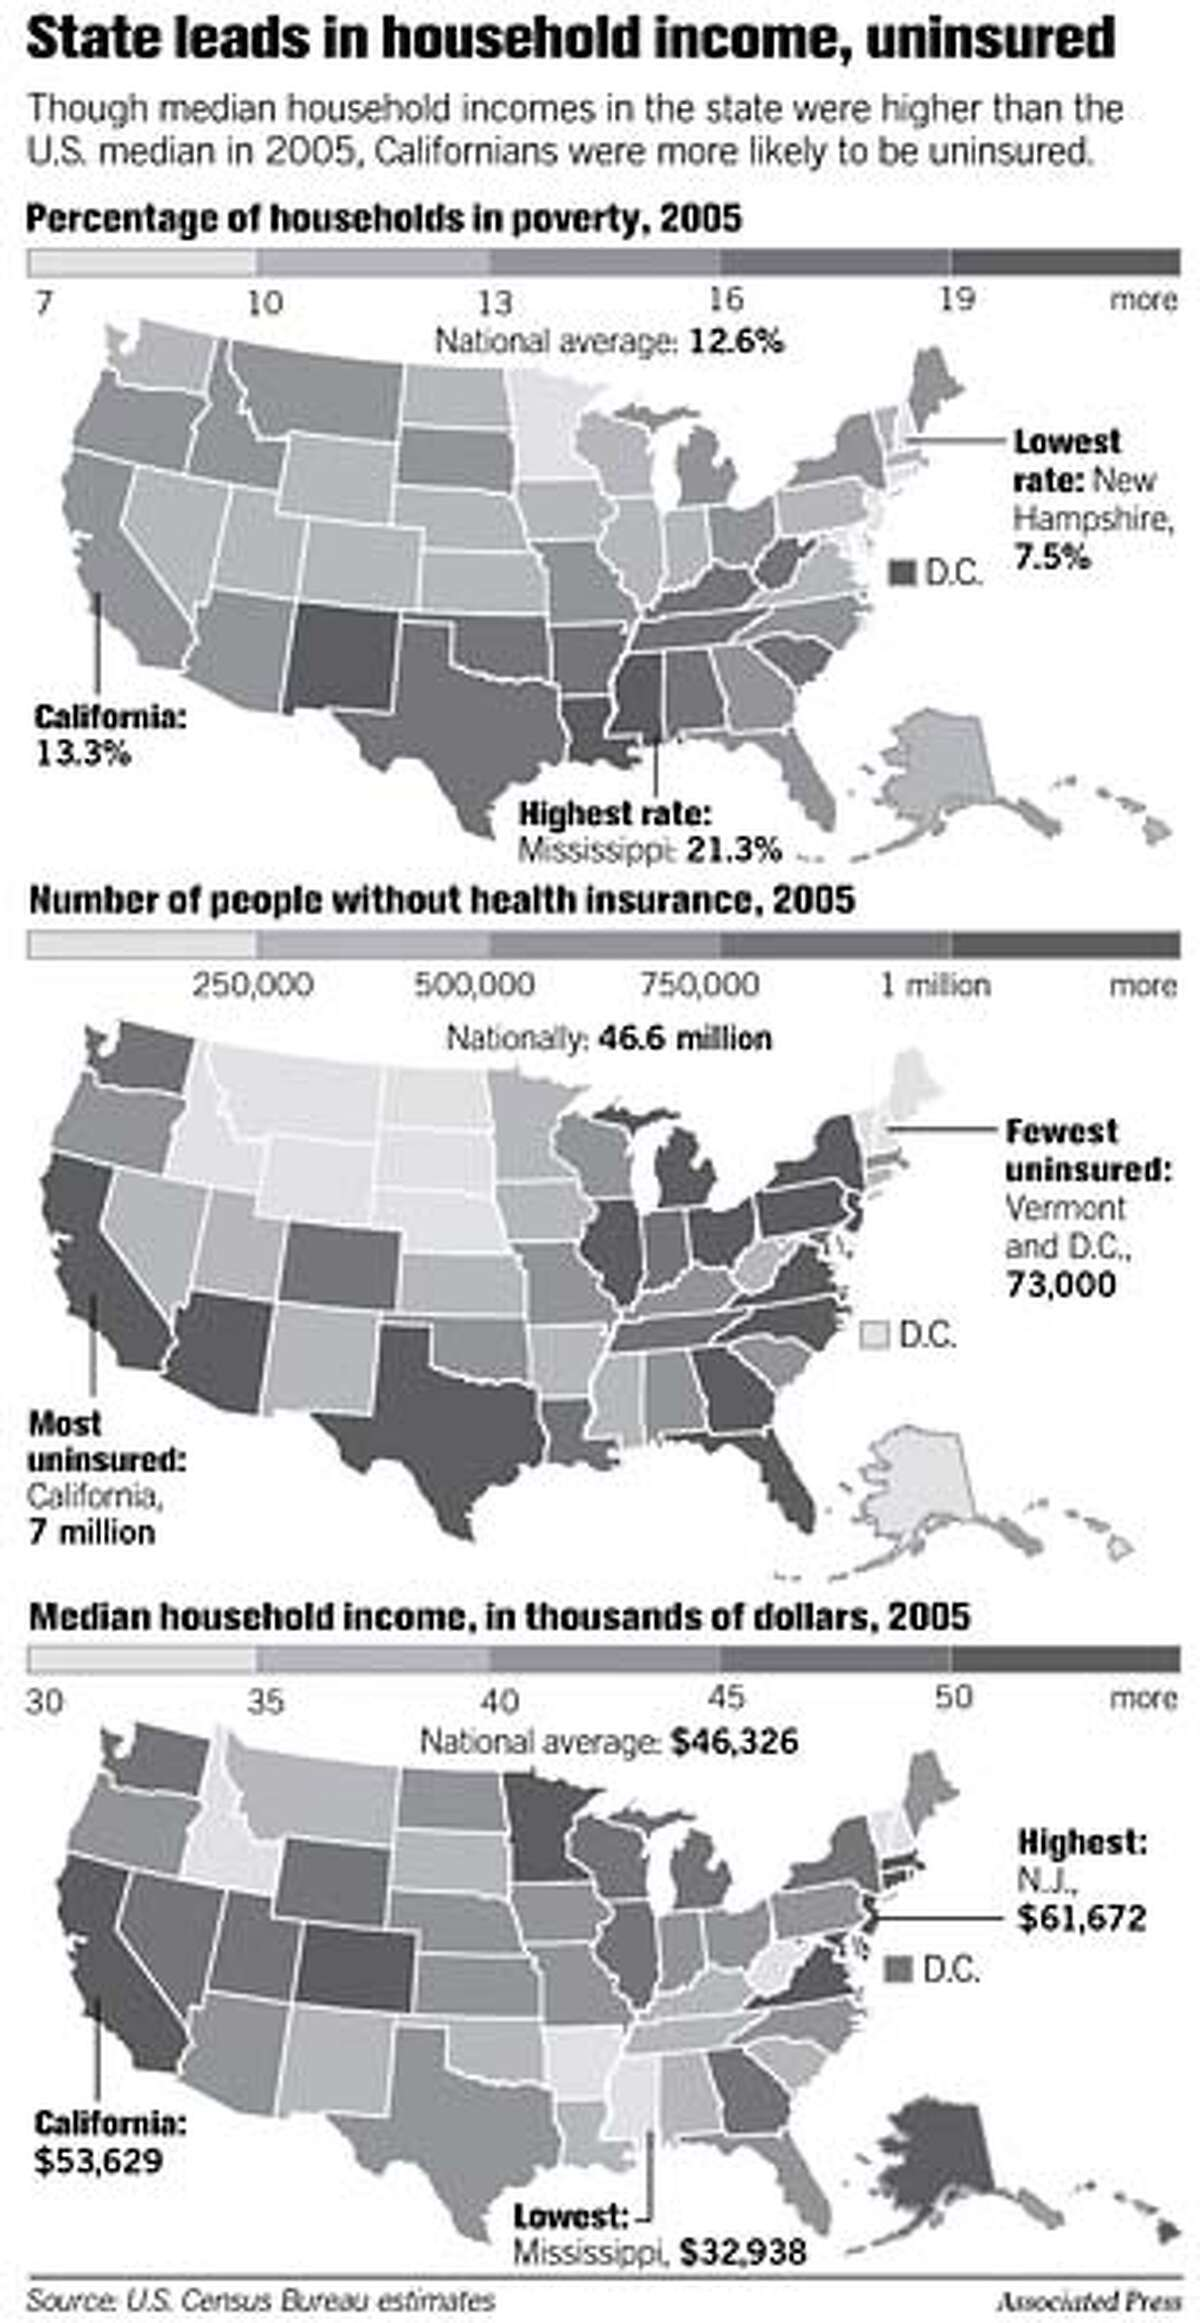 State Leads in Household Income, Uninsured. Associated Press Graphic